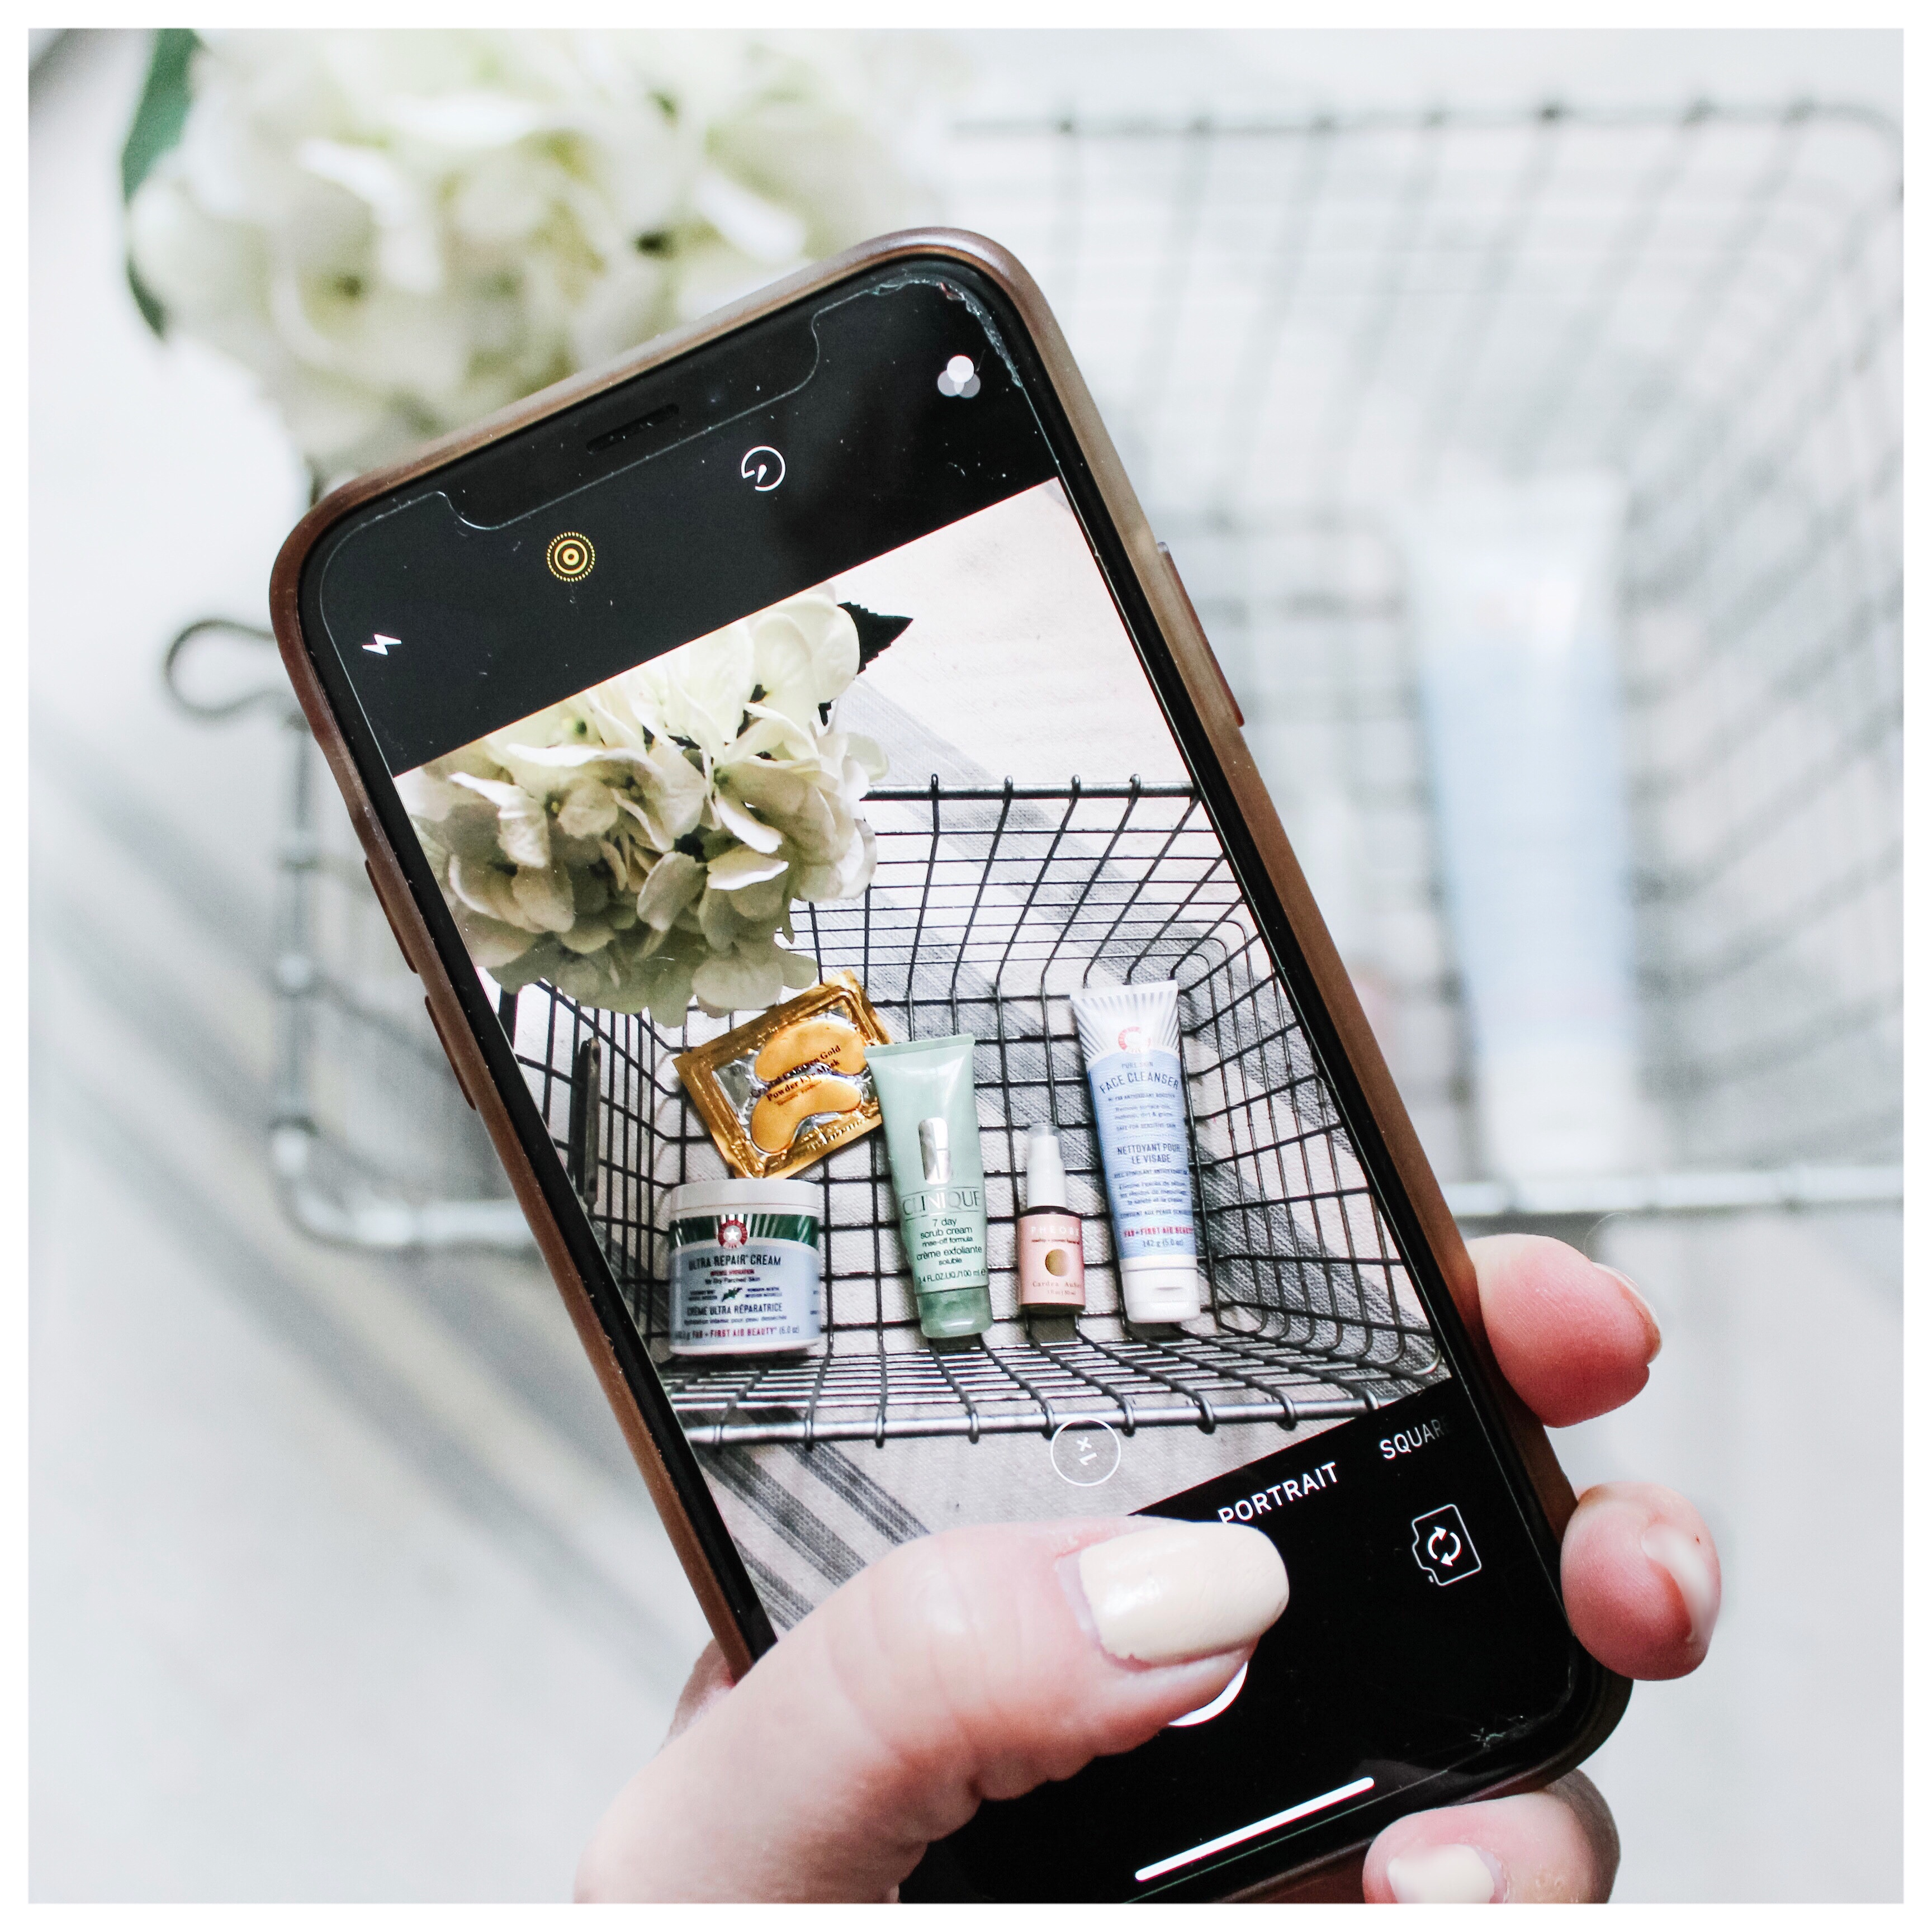 Top Tips, tricks and Tools for Taking Better Photos with your iPhone to help you build a cohesive brand on Instagram